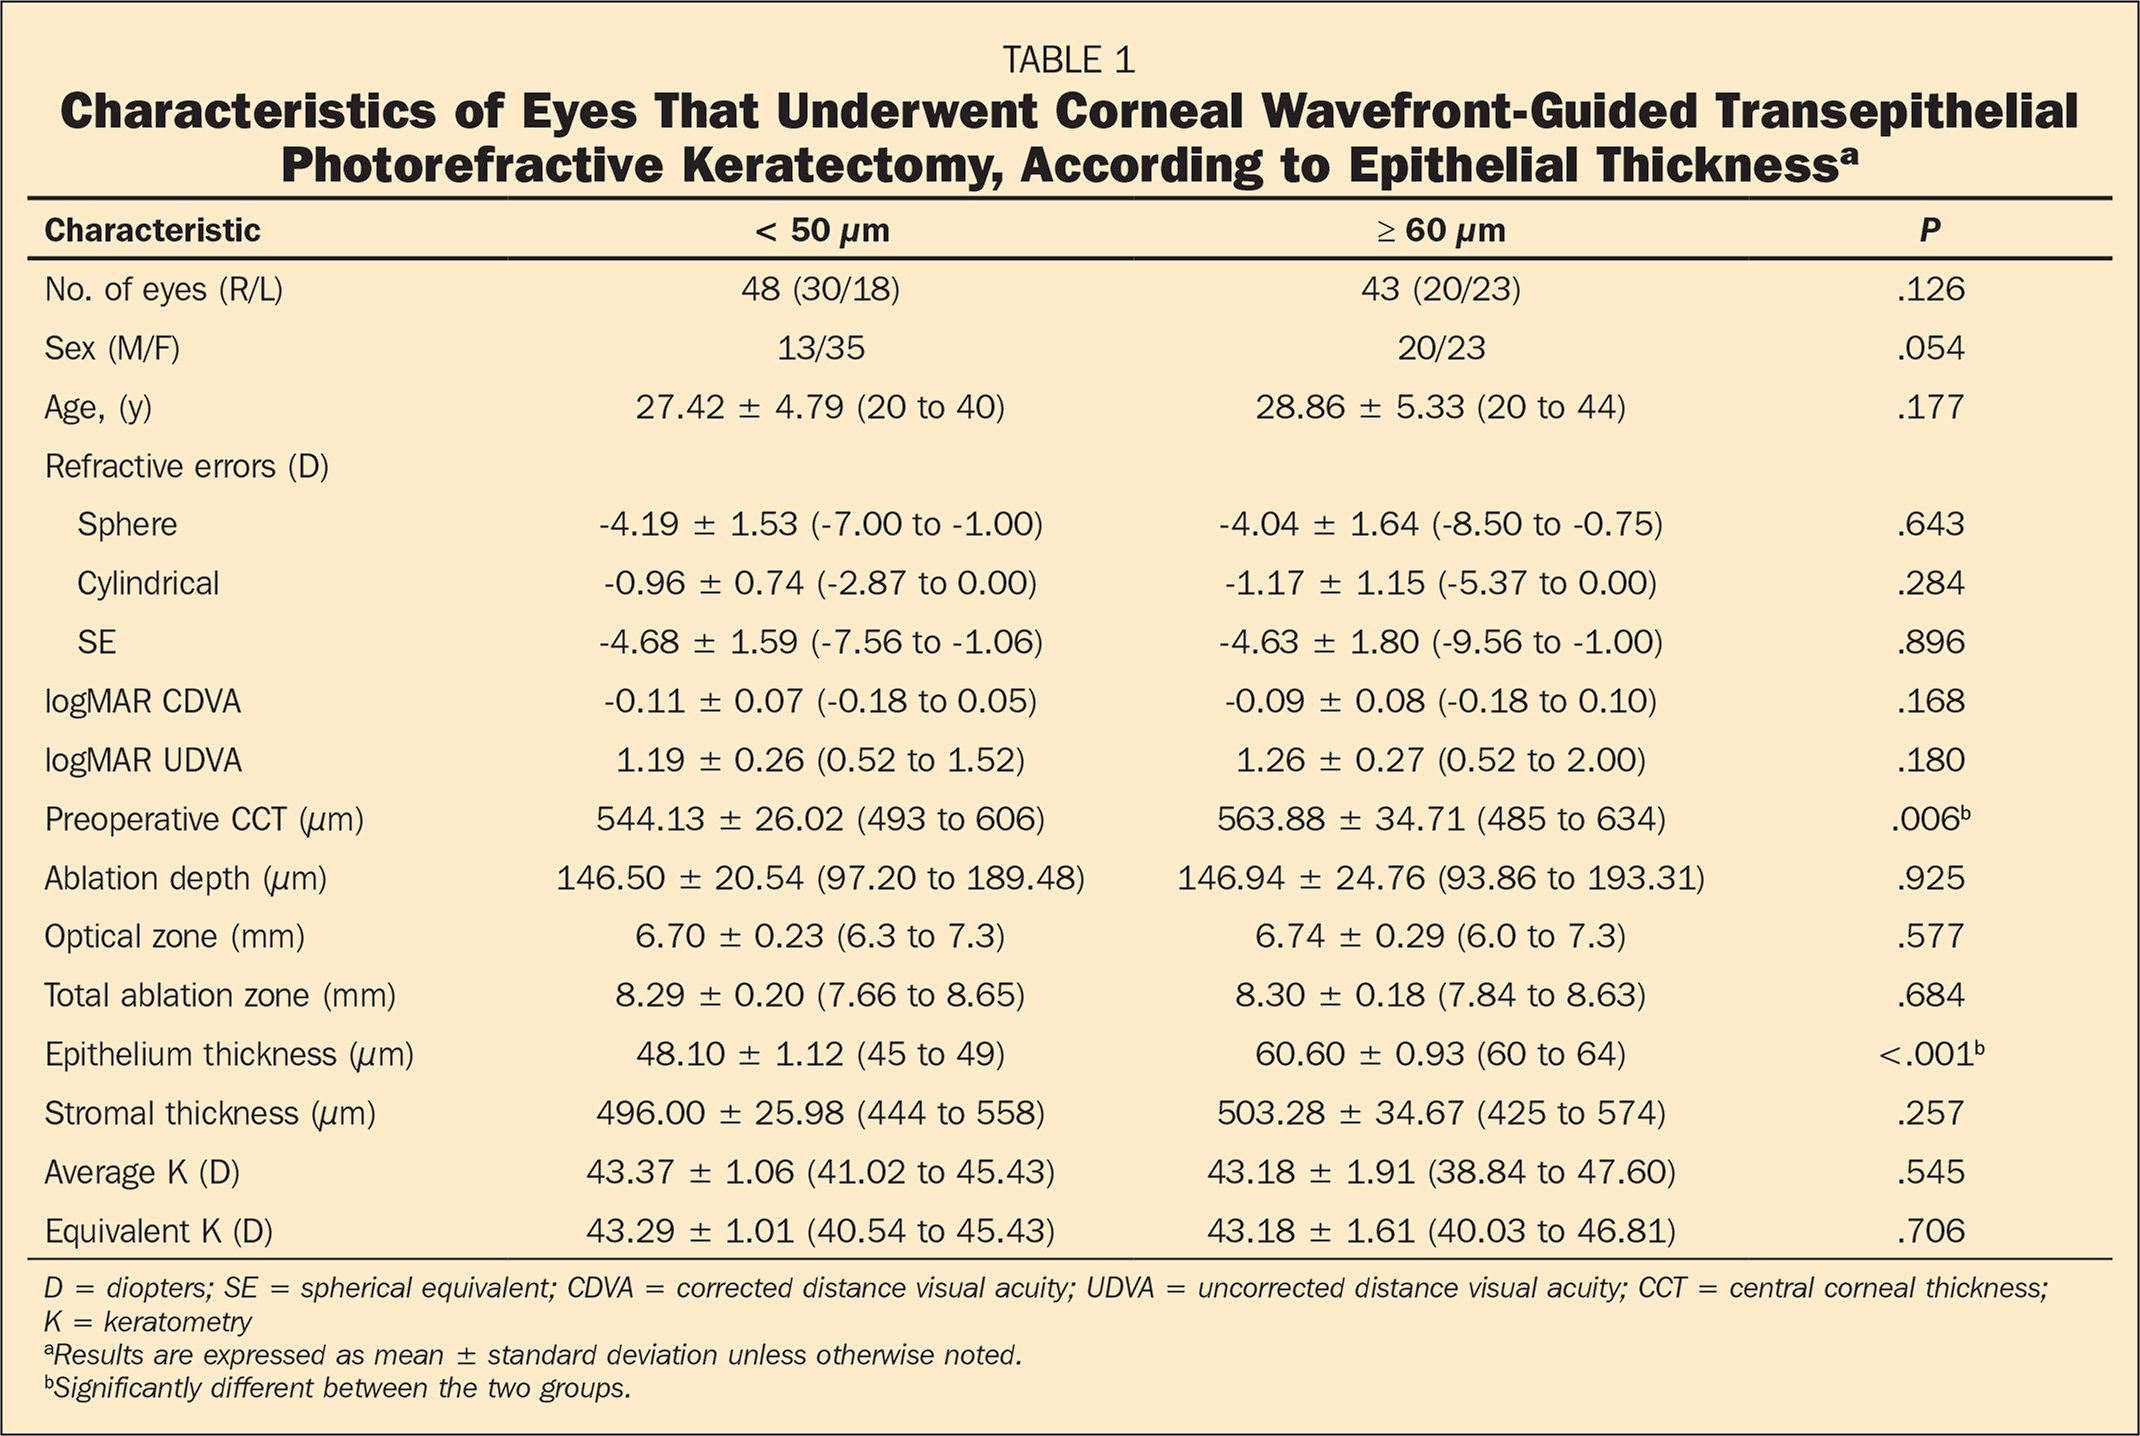 Characteristics of Eyes That Underwent Corneal Wavefront-Guided Transepithelial Photorefractive Keratectomy, According to Epithelial Thicknessa